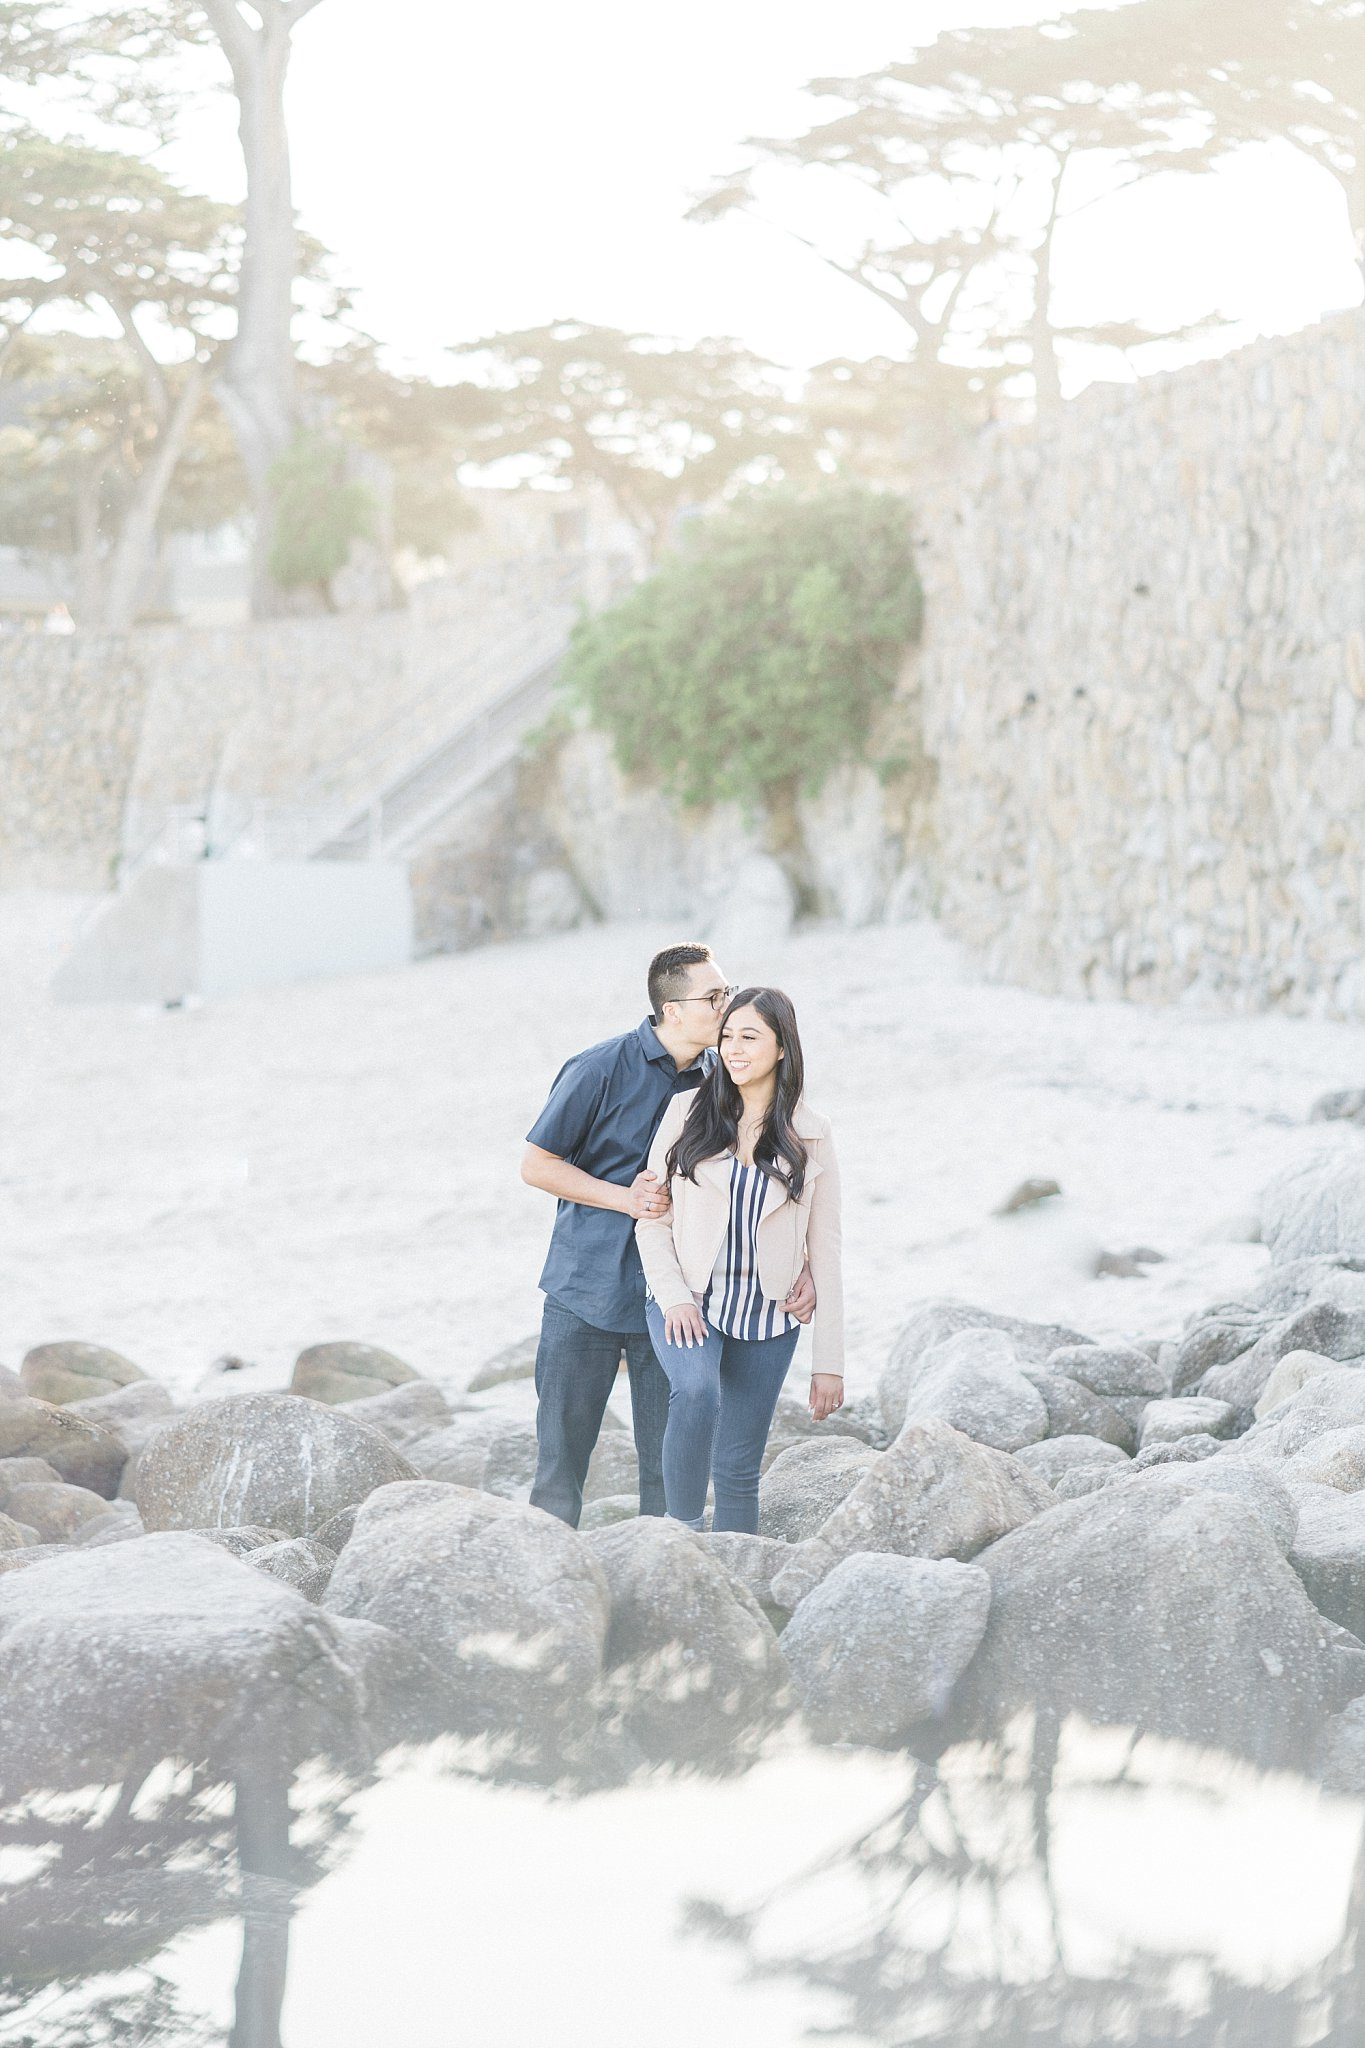 monterey-engagement-photographer-city-hall-drew-zavala-khrystal-chris_0066.jpg